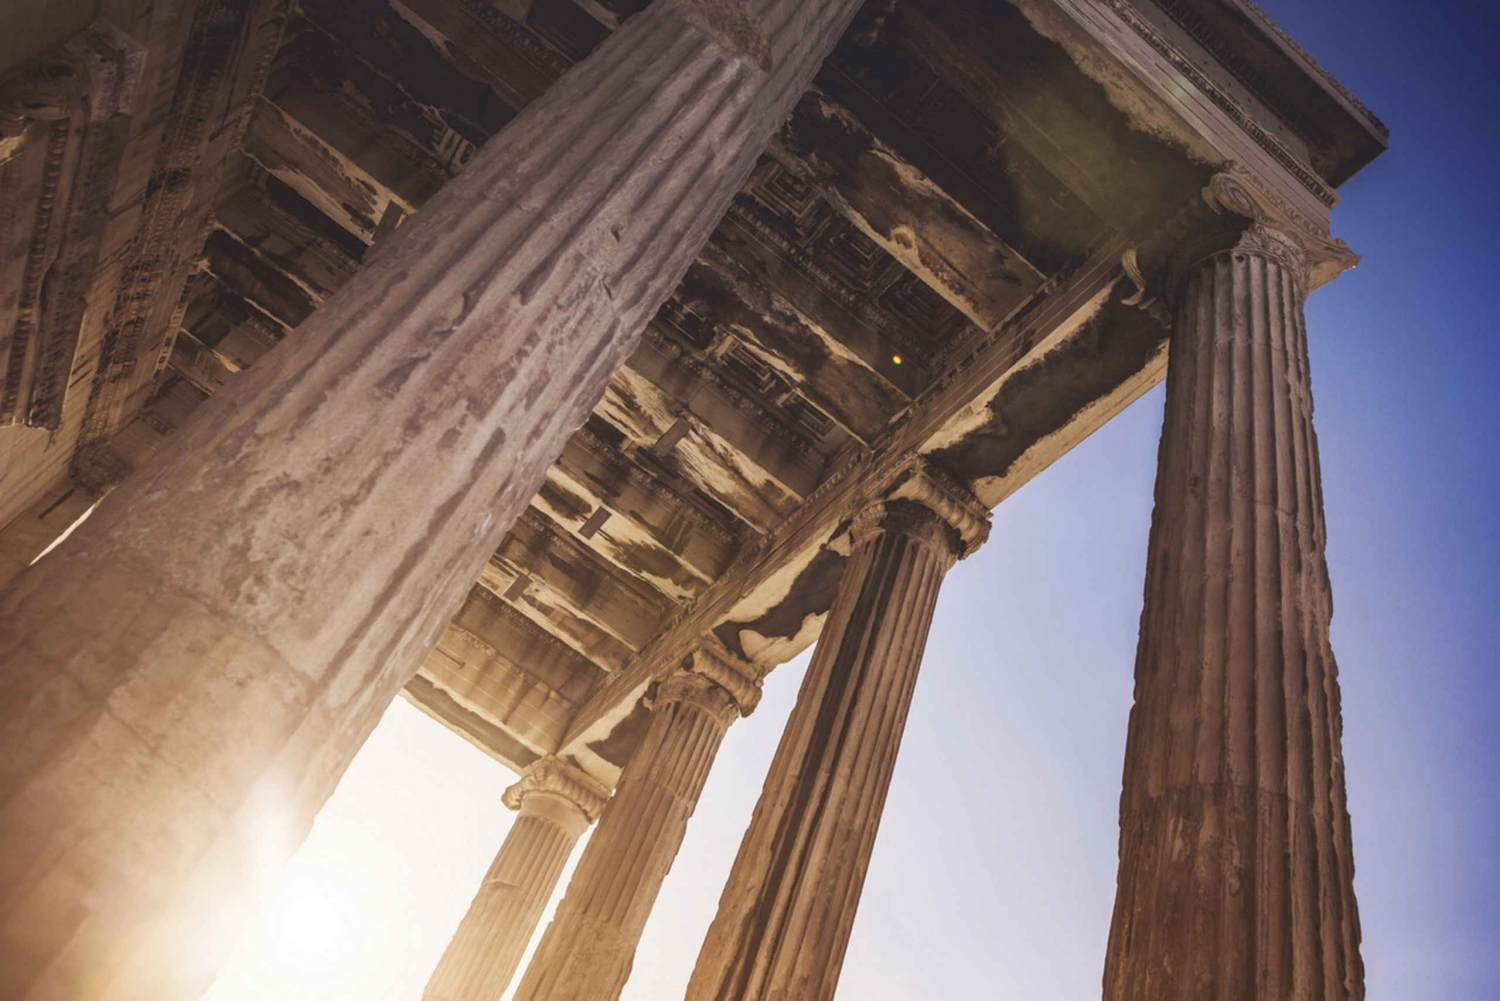 Acropolis Hill and Acropolis Museum: Full Day Mythology Tour